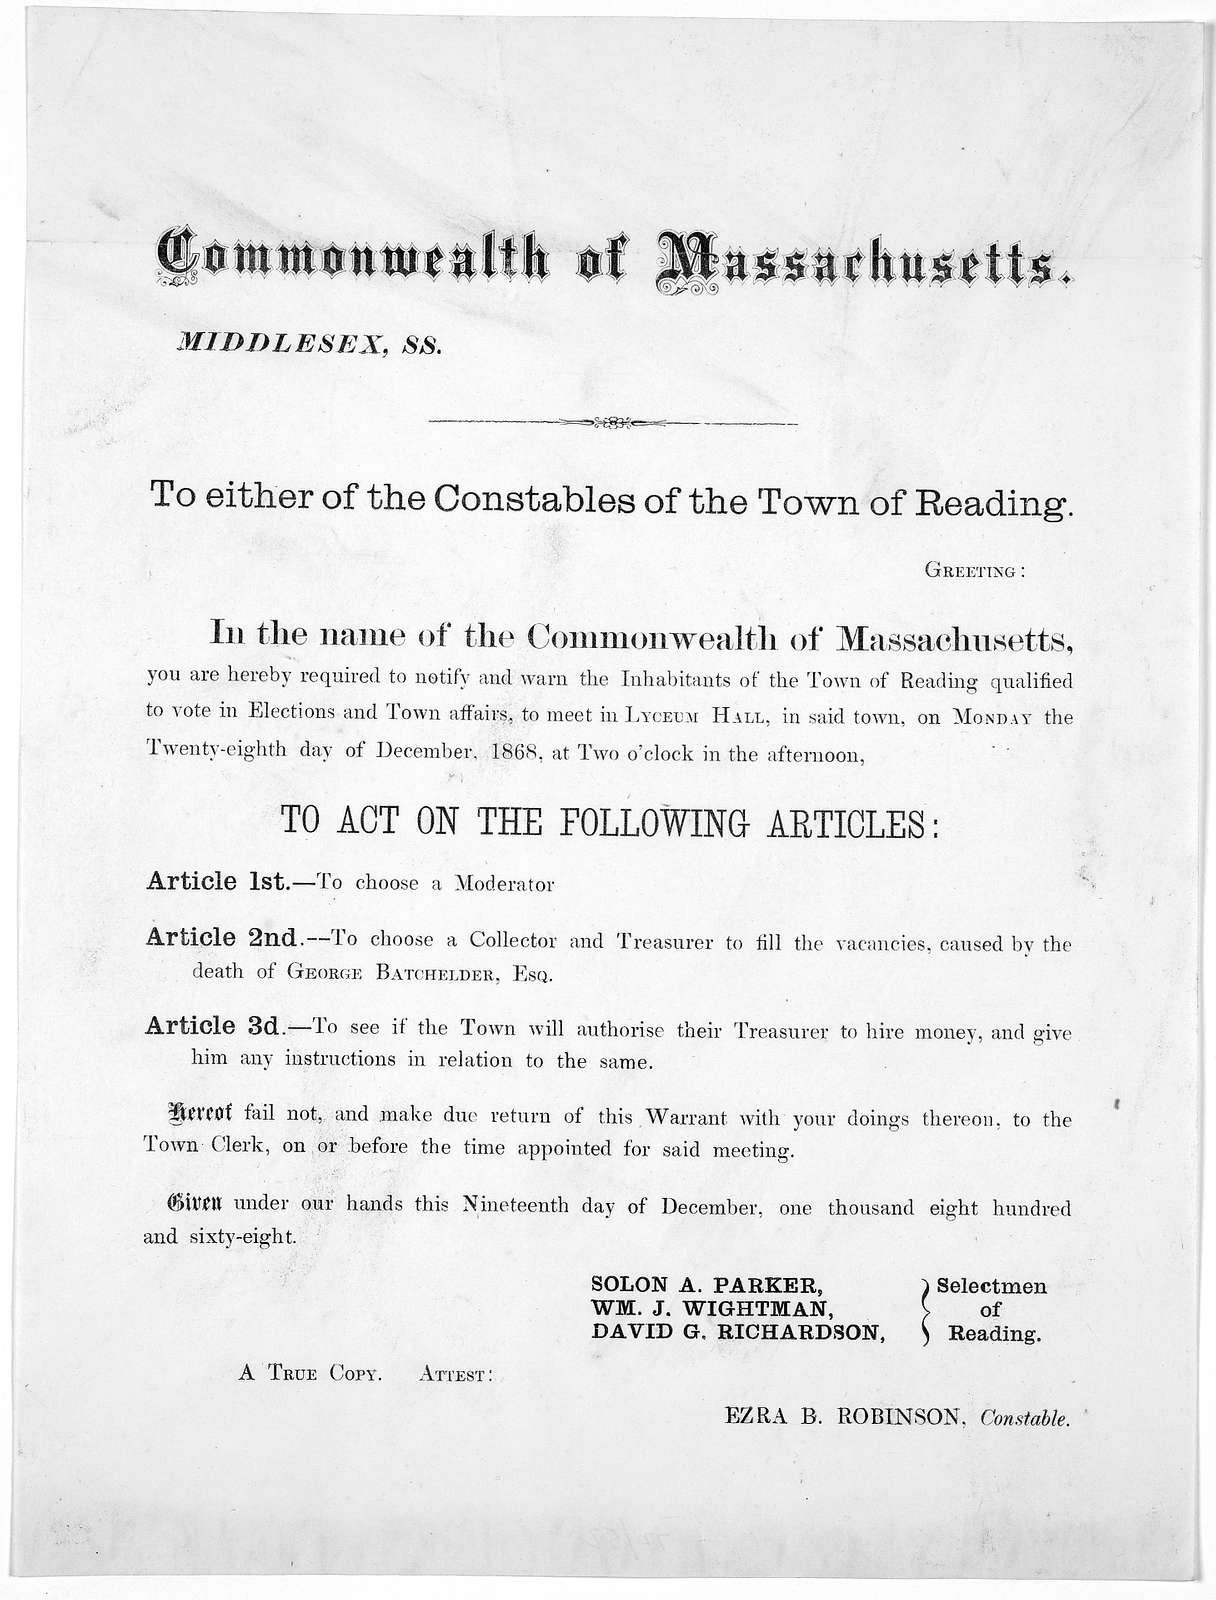 Commonwealth of Massachusetts. Middlesex. ss. To either of the Constables of the Town of Reading. Greeting: In the name of the Commonwealth of Massachusetts, you are hereby required to notify and warn the inhabitants of the Town of Reading quali